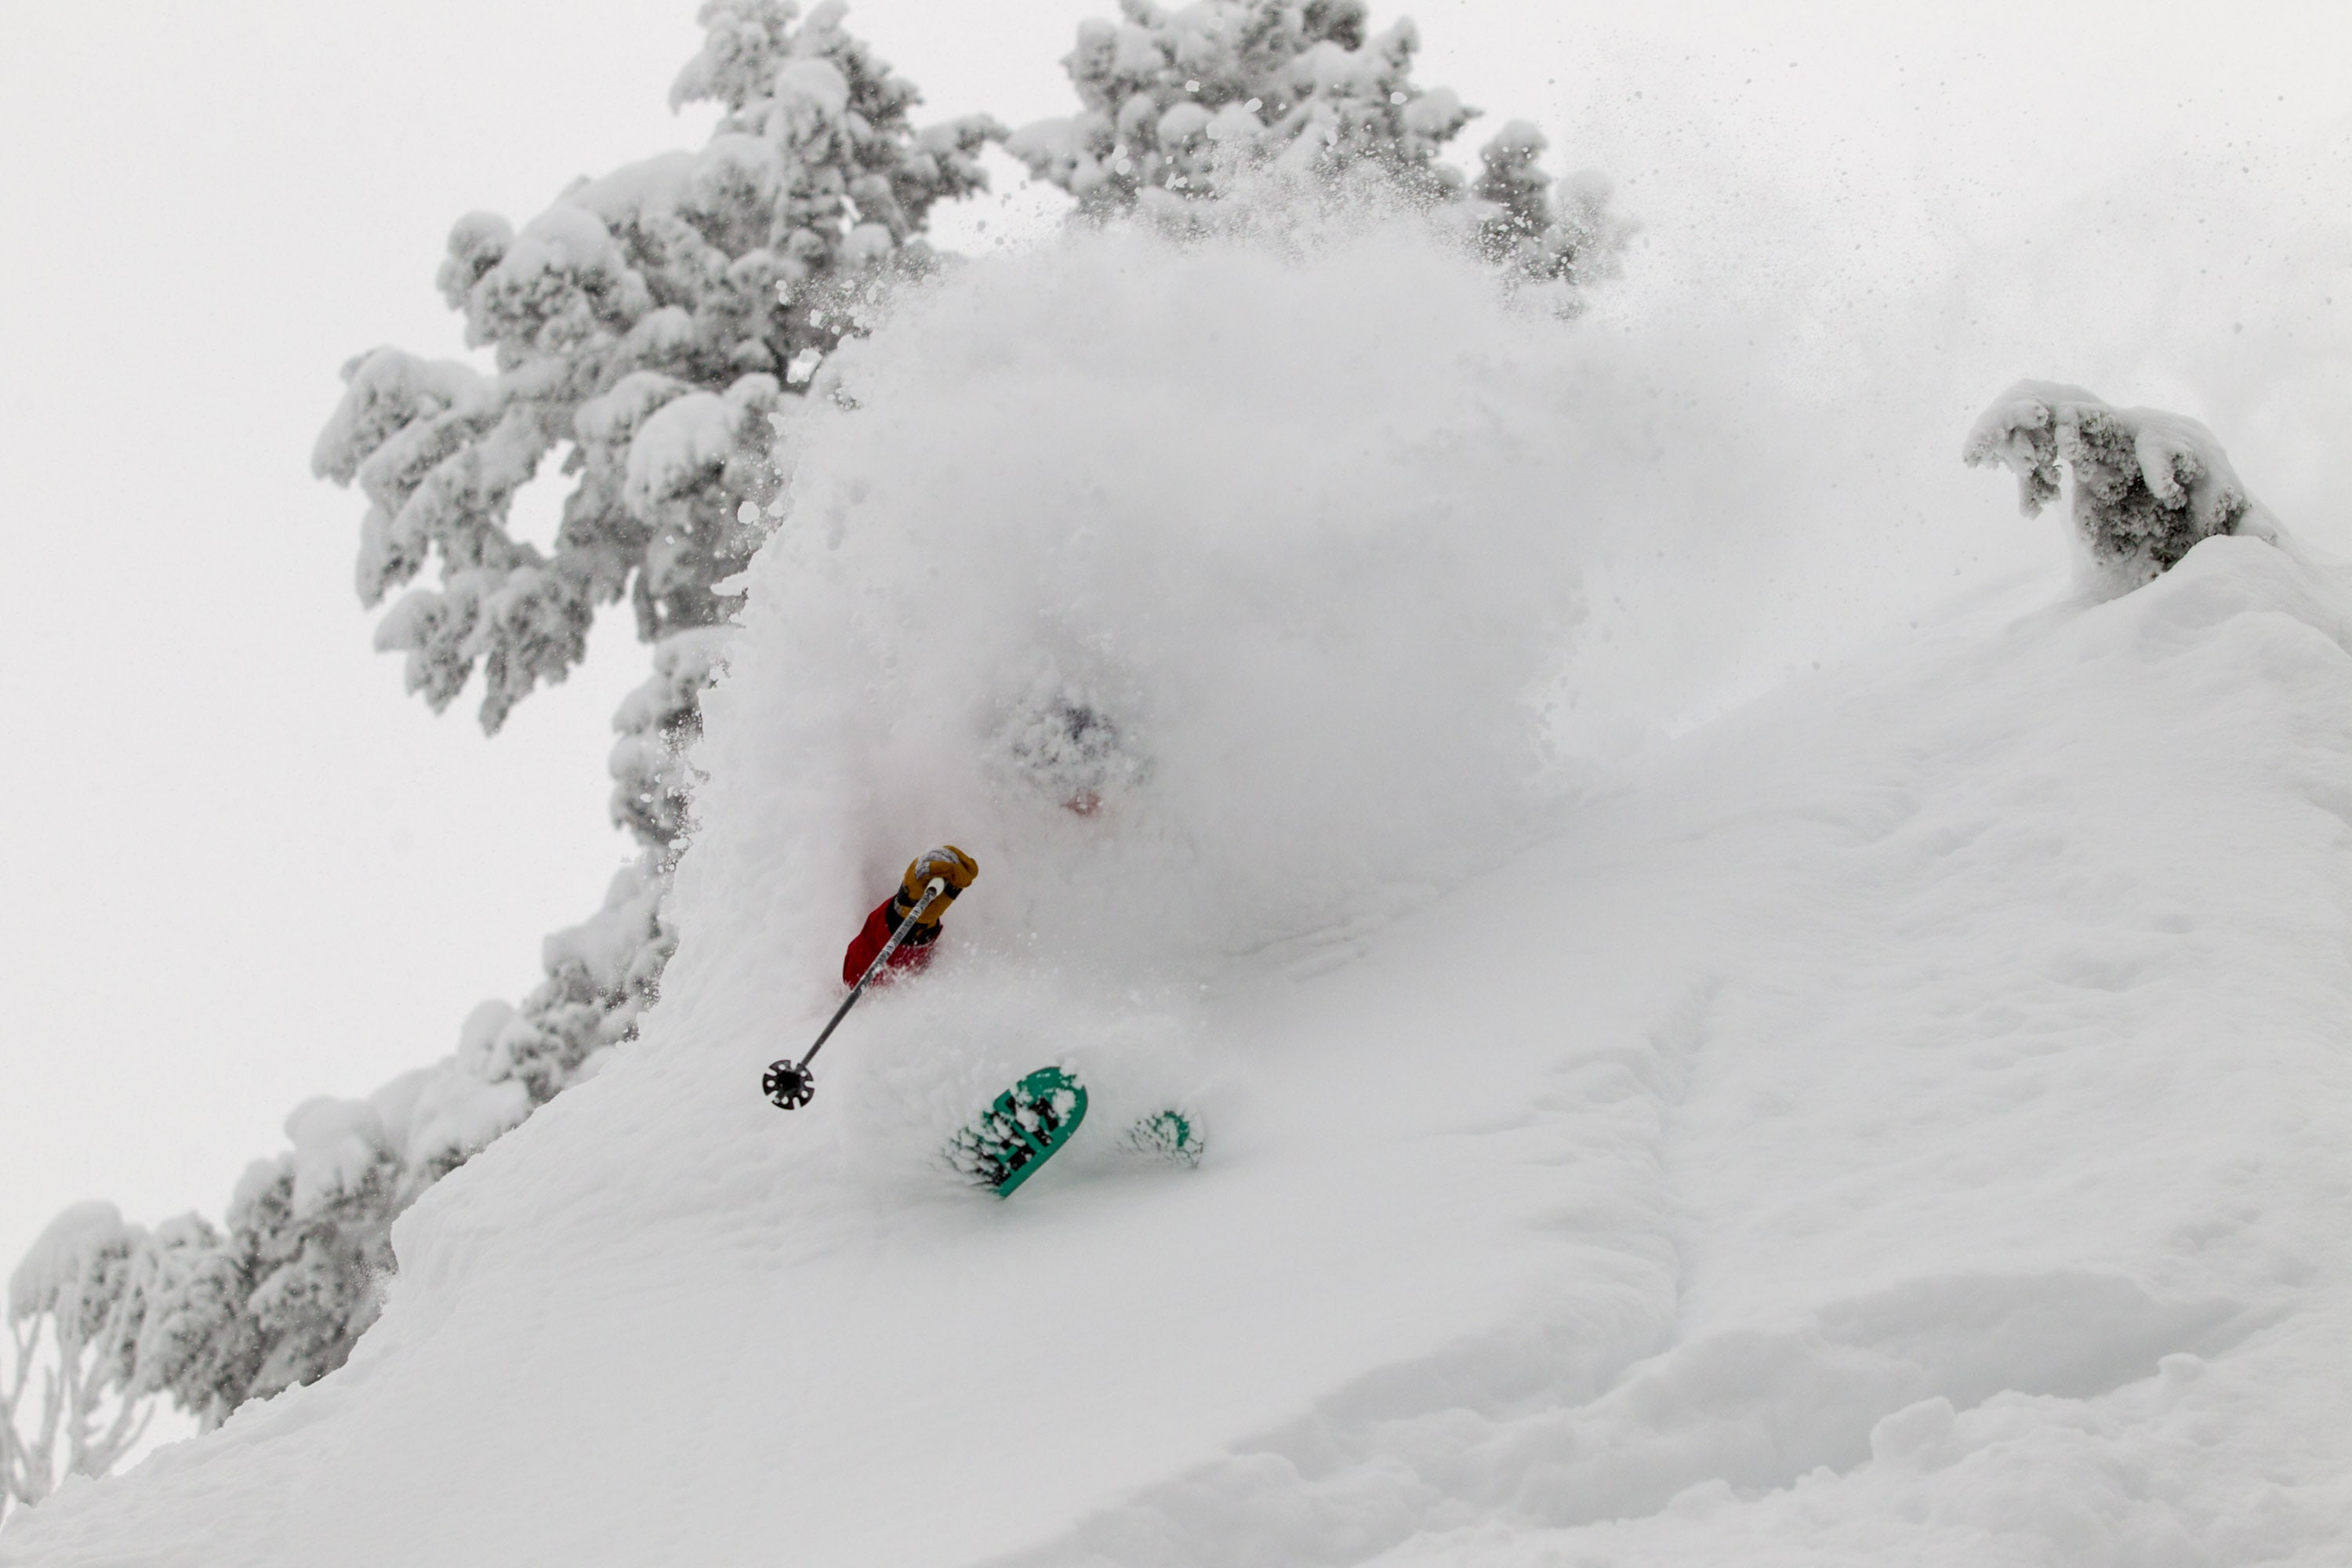 Grand Targhee is well noted for copious amounts of  deep powder. Credit: Grand Targhee Facebook page